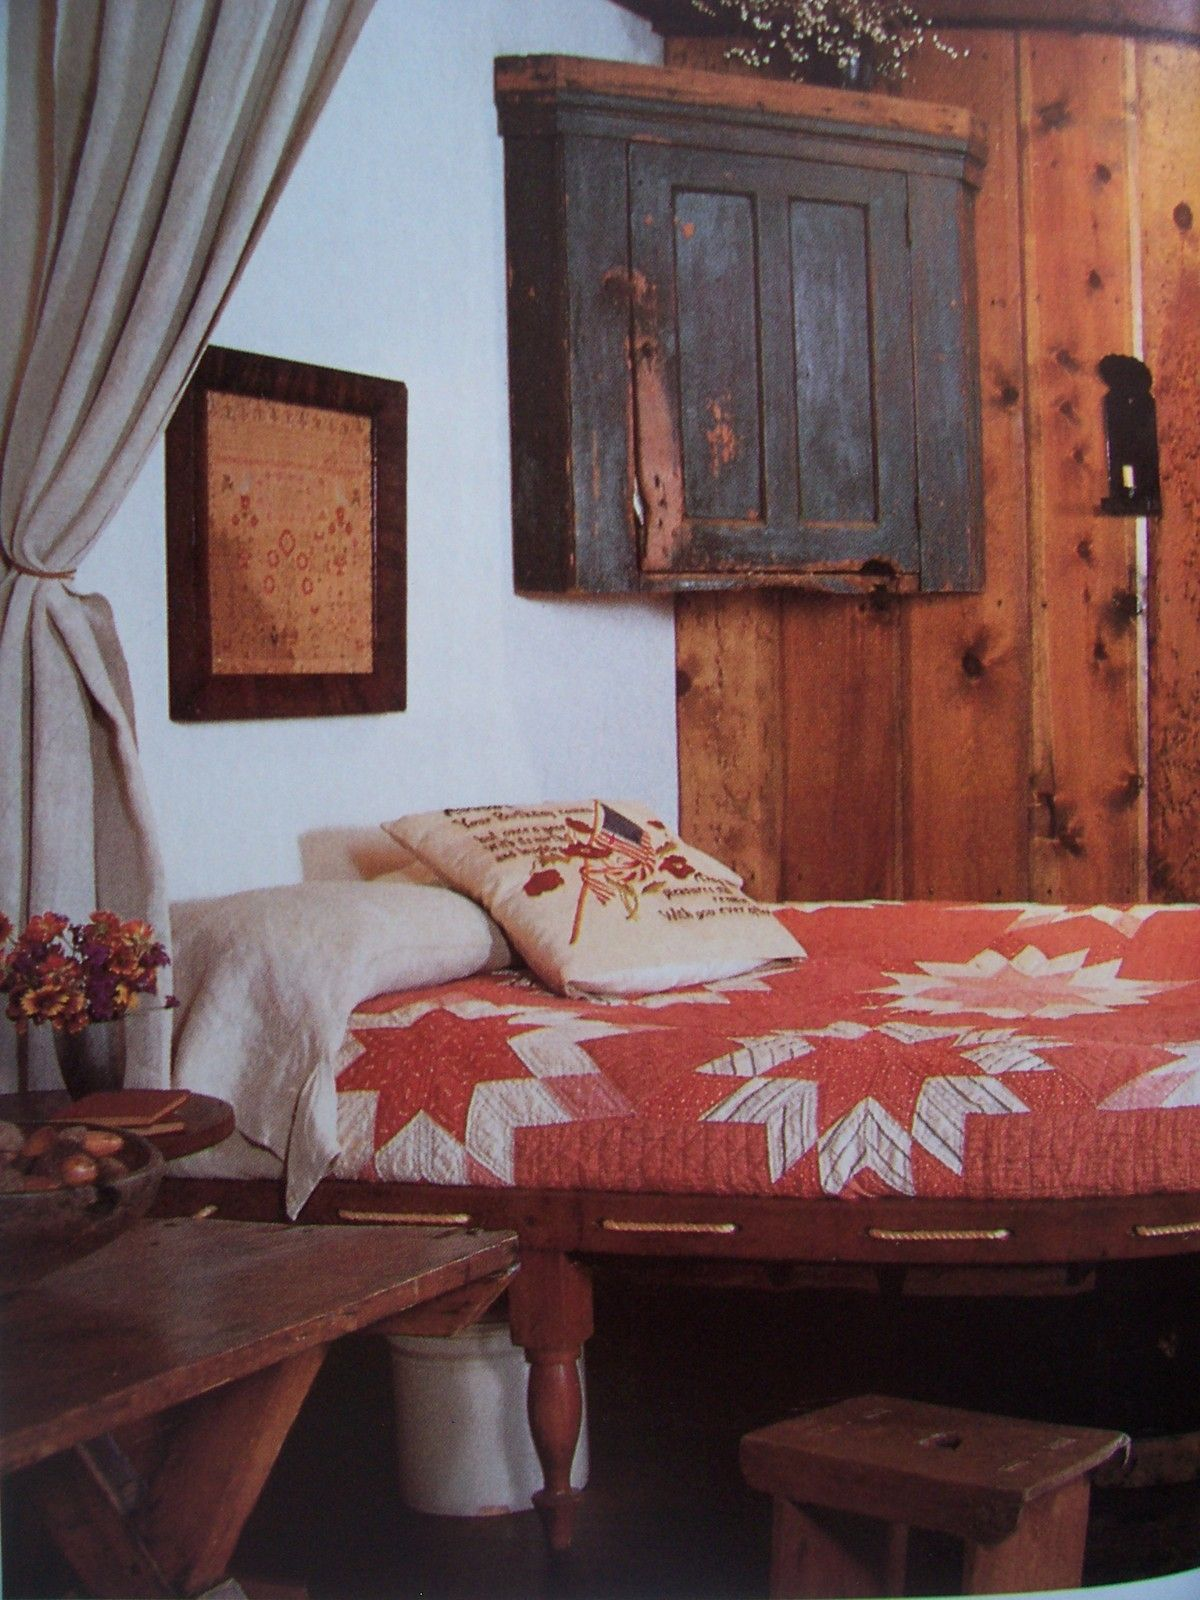 cheap primitive country bedroom decorating ideas | Love the quilt | Country furniture, Decor, Primitive bedroom